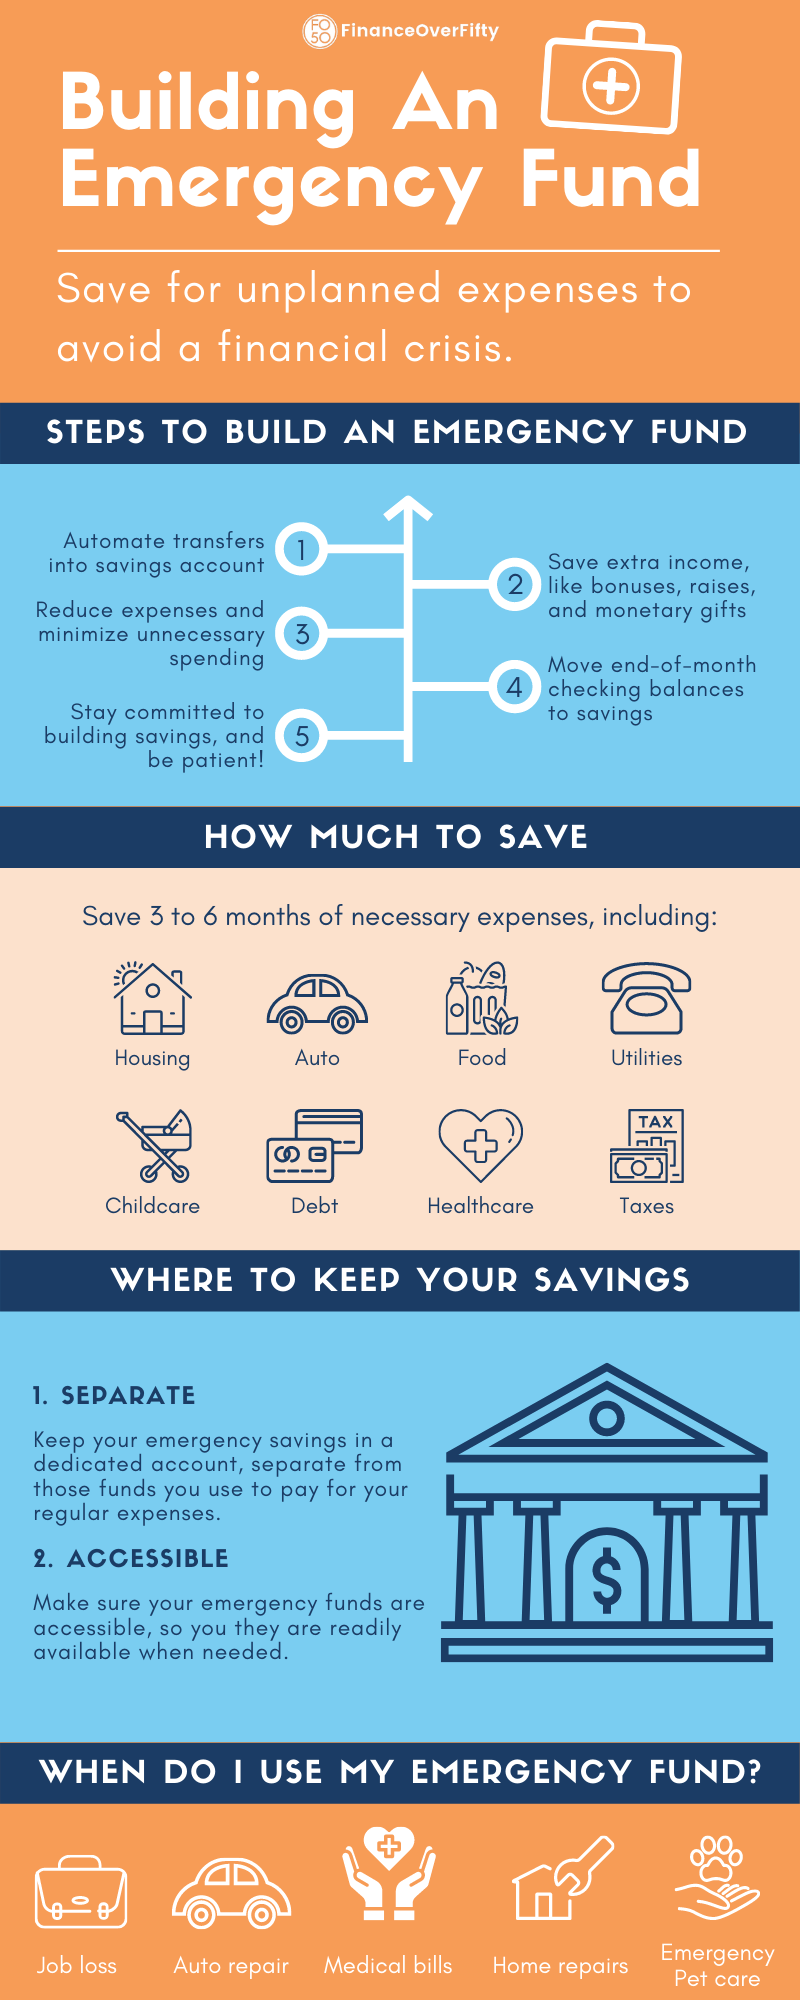 How to build an emergency fund infographic